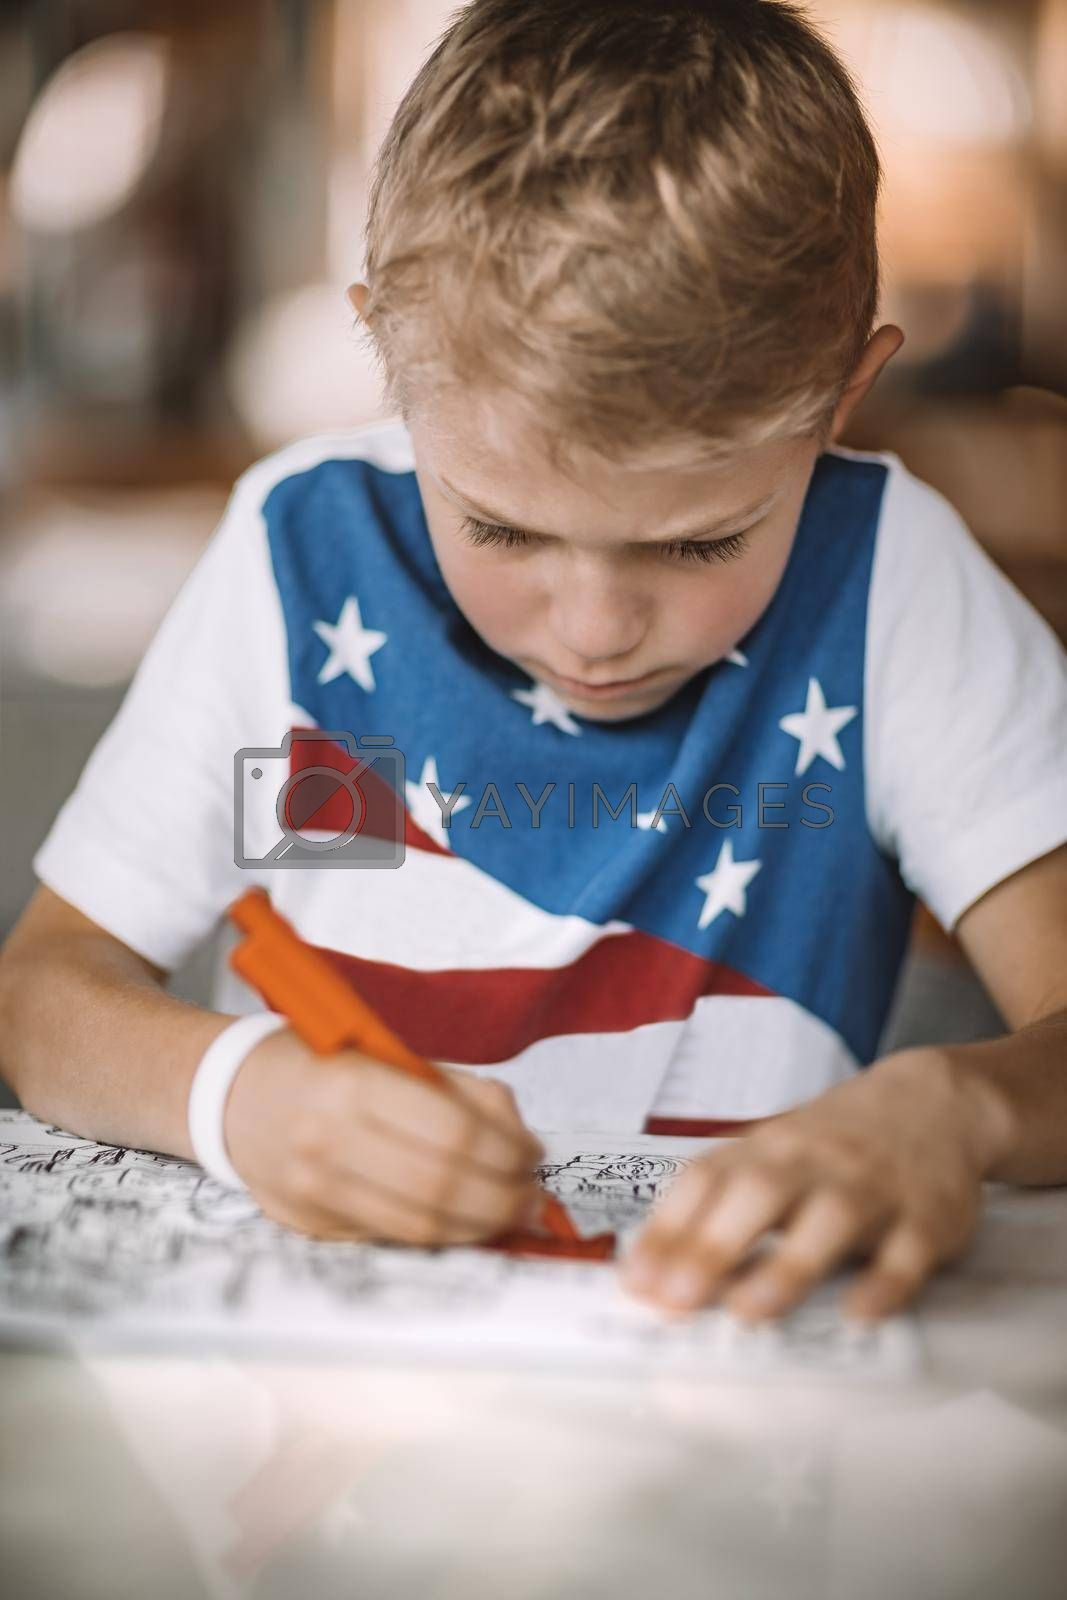 Portrait of a Serious Boy with Concentration Drawing and Coloring. Children on Distance Education. Homework or Leisure Time. Schooling at Home.